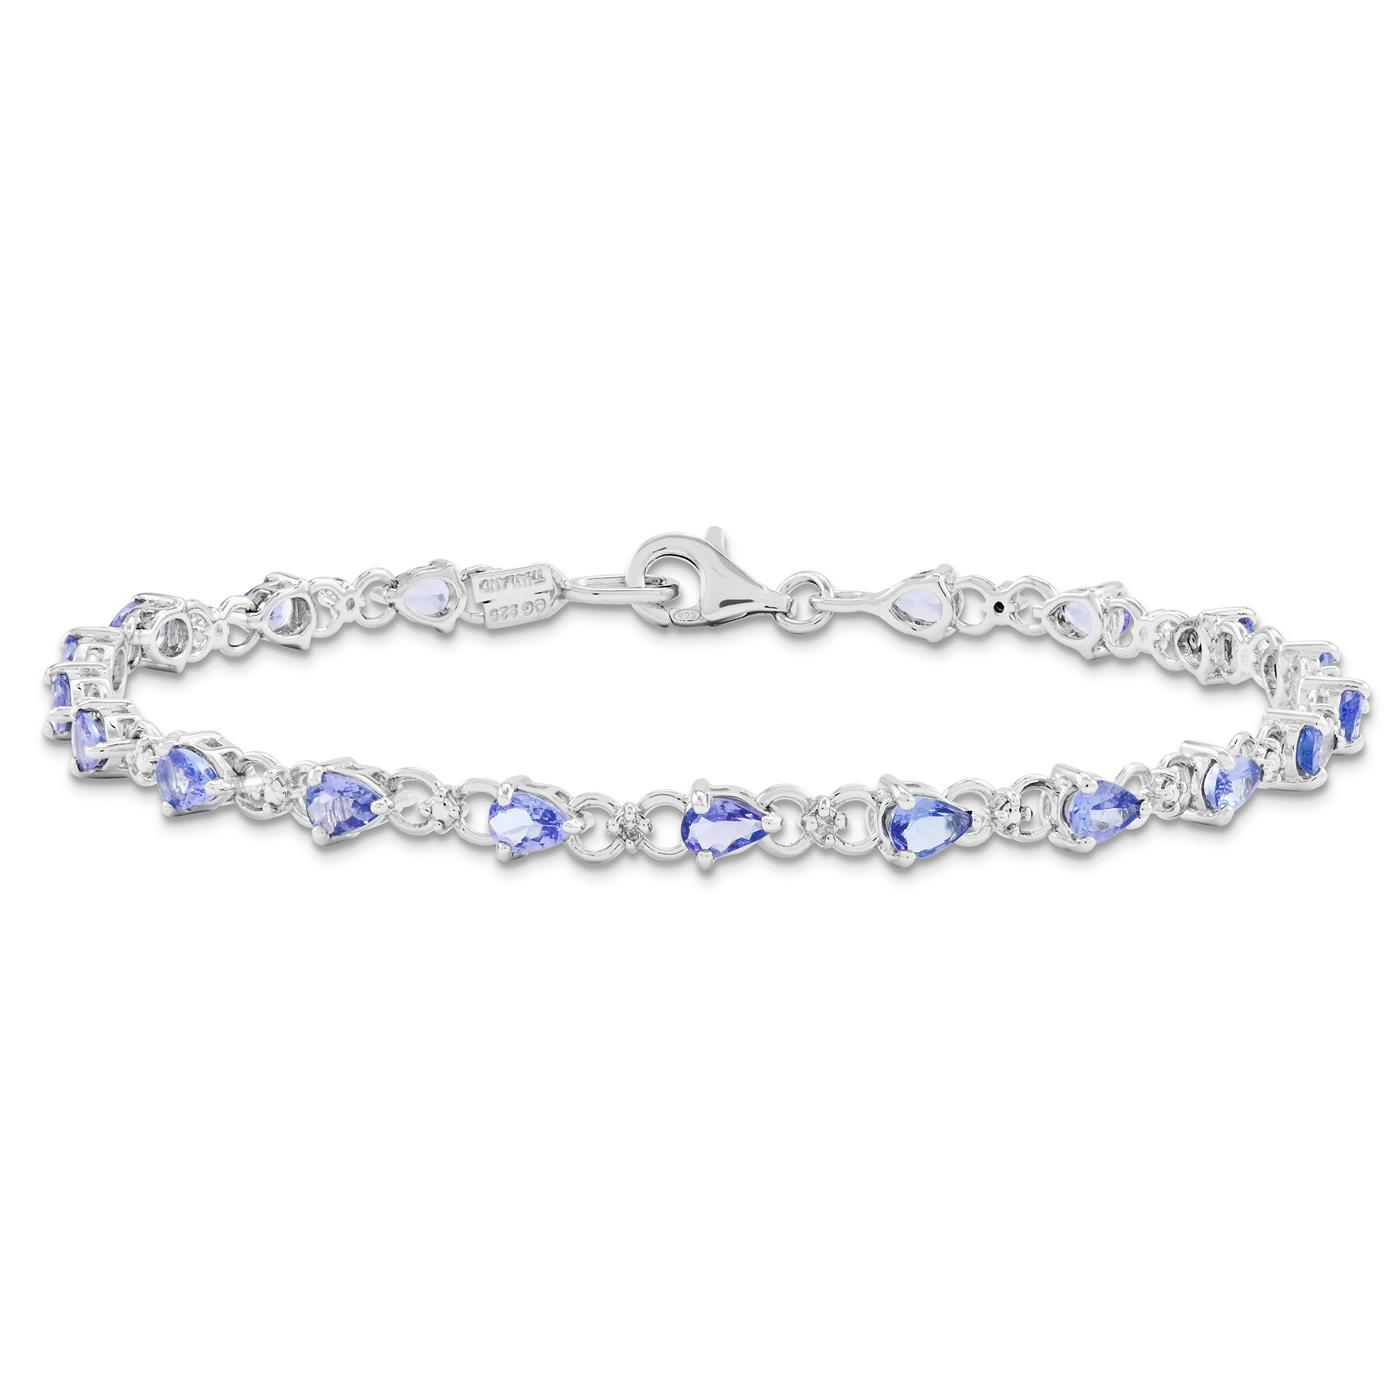 "Ladies 925 Sterling Silver 3mm Tanzanite and Diamond Gemstone Bracelet 7"" by Fusion Collections"